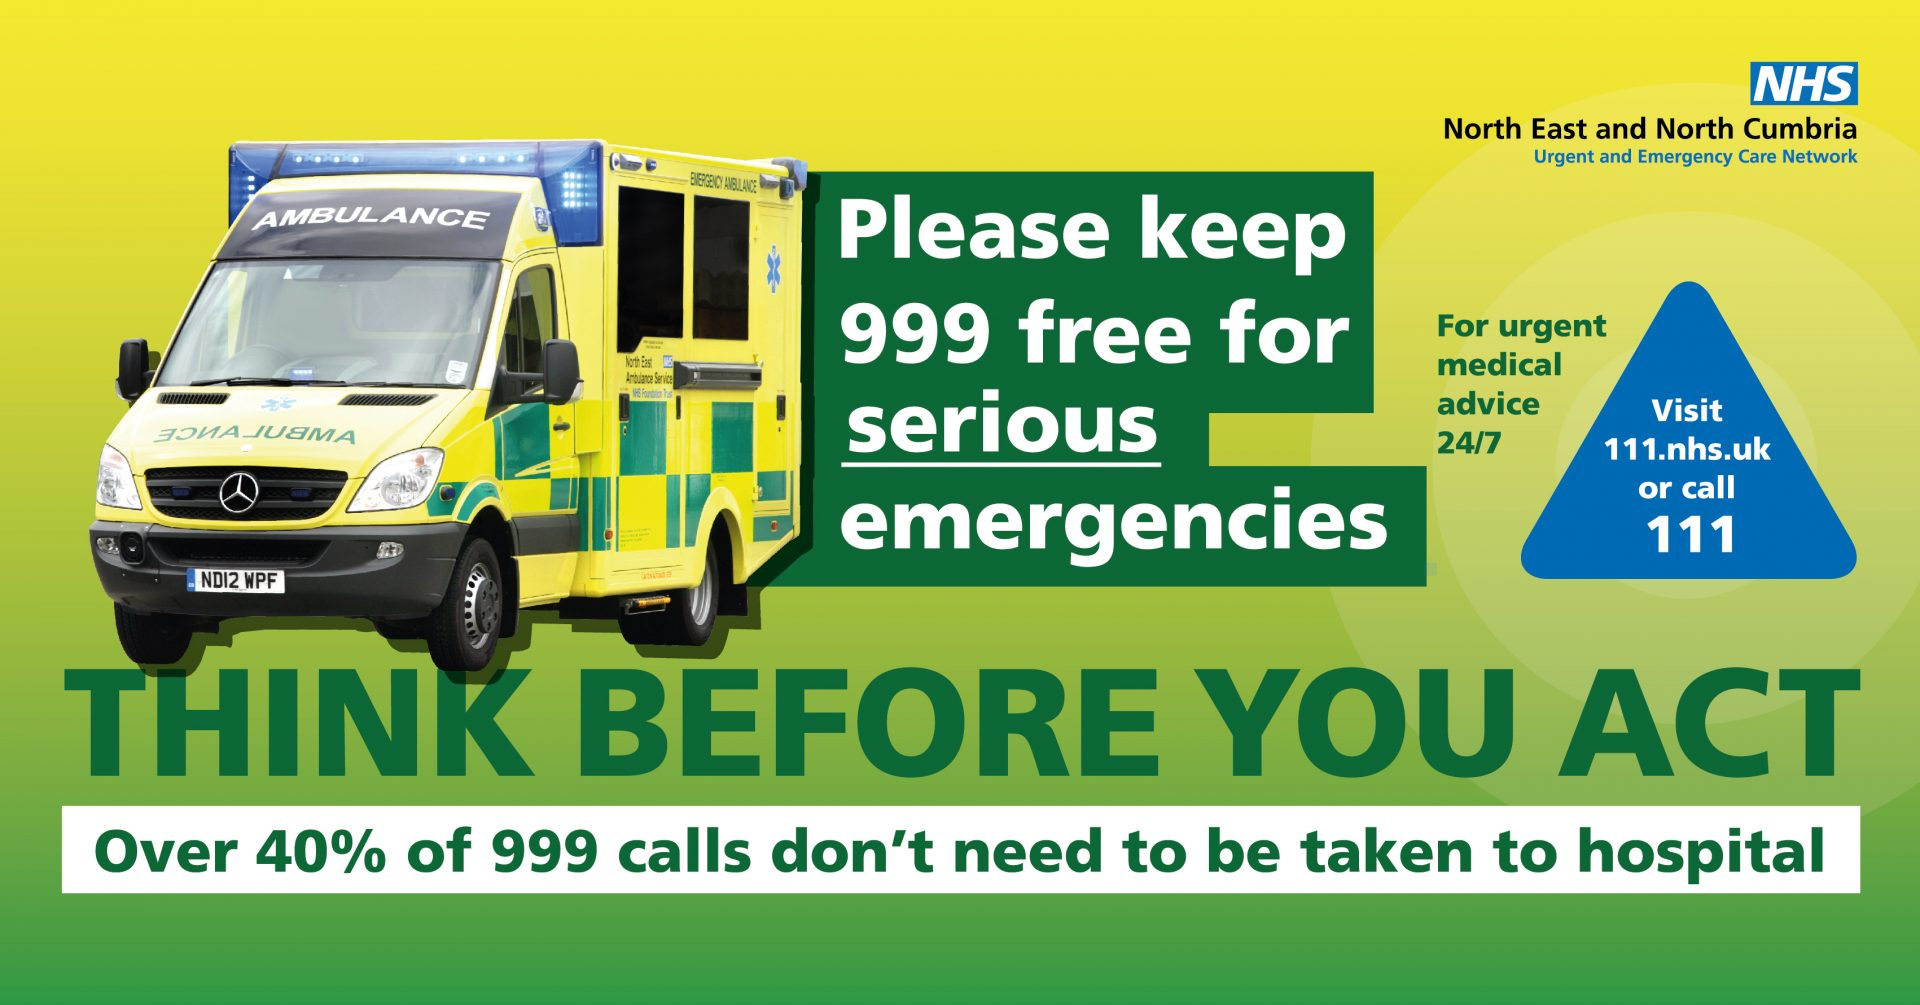 New Year plea from region's NHS to use services wisely